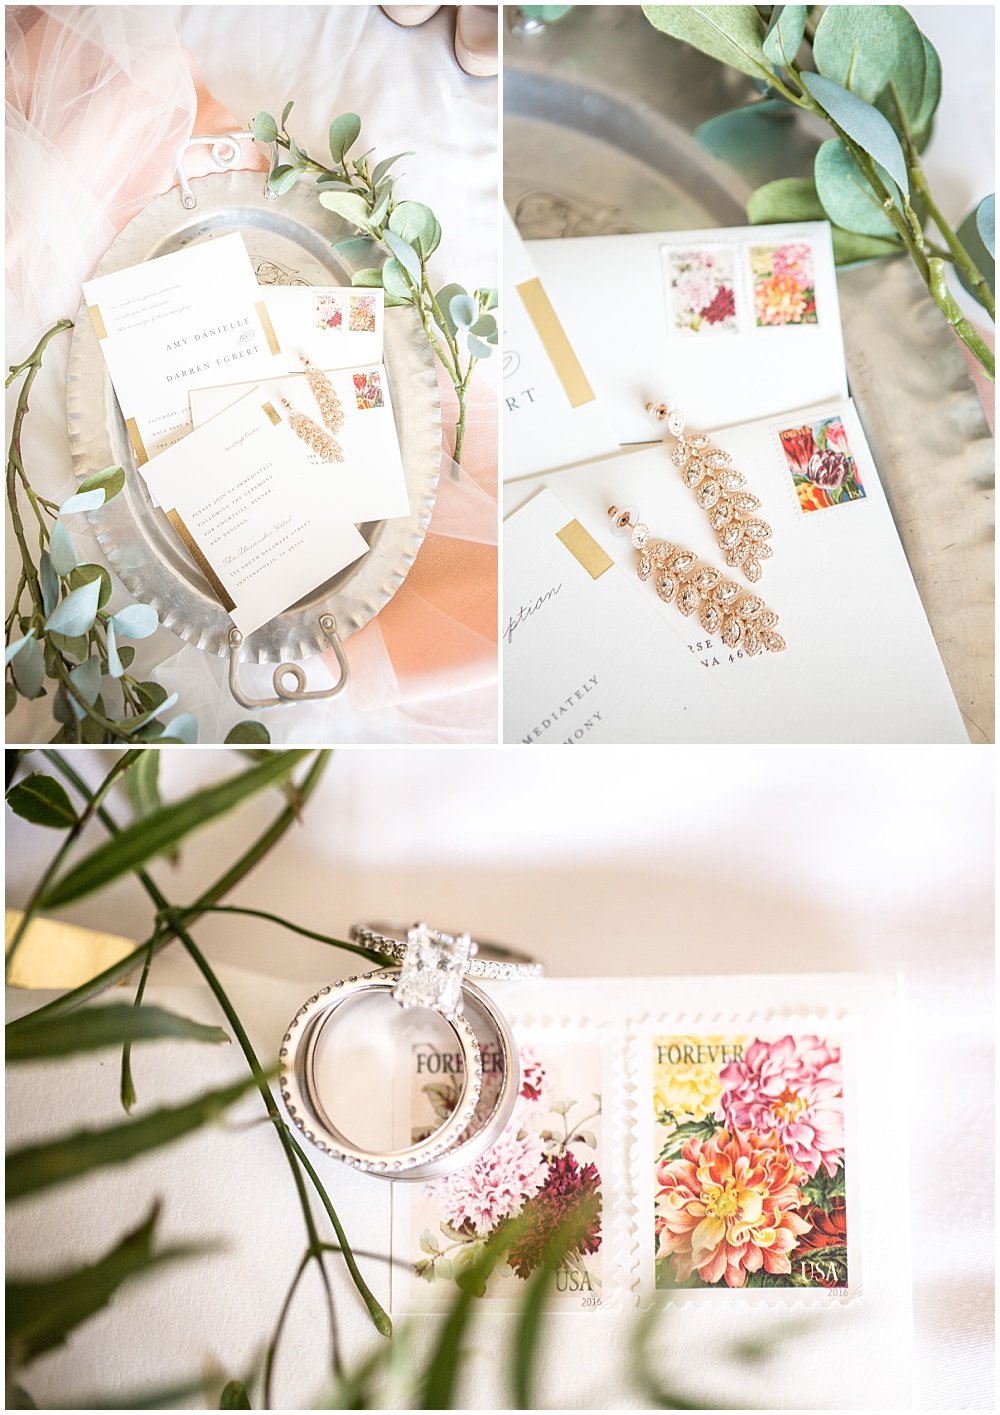 invitation suite, white wedding invite, vintage tray, invitation details, bridal jewelry, colorful, modern wedding at The Alexander Hotel | Conforti Photography and Jessica Dum Wedding Coordination